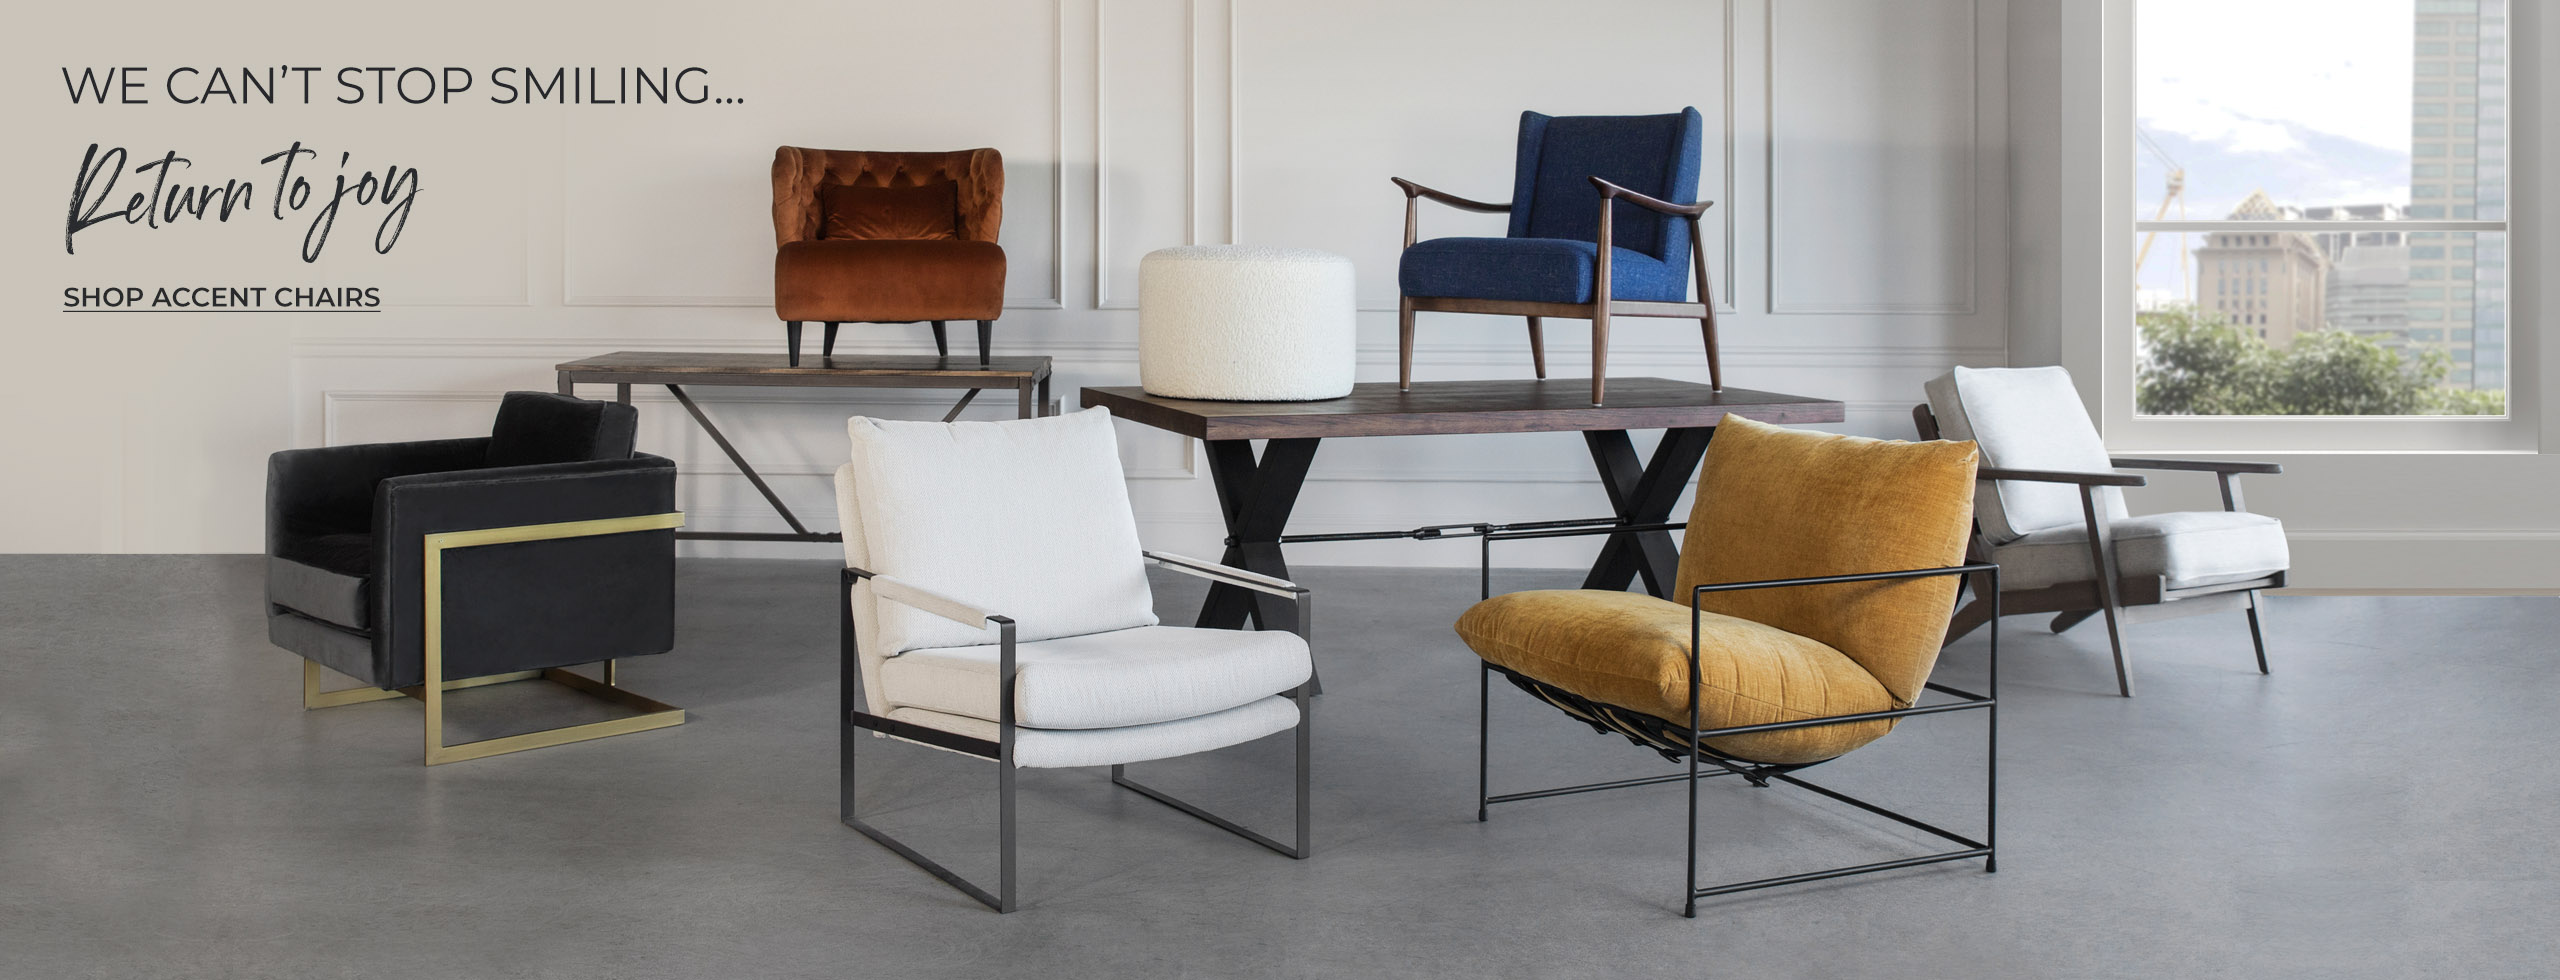 Muse and Merchant - Return to Joy - Accent Chairs